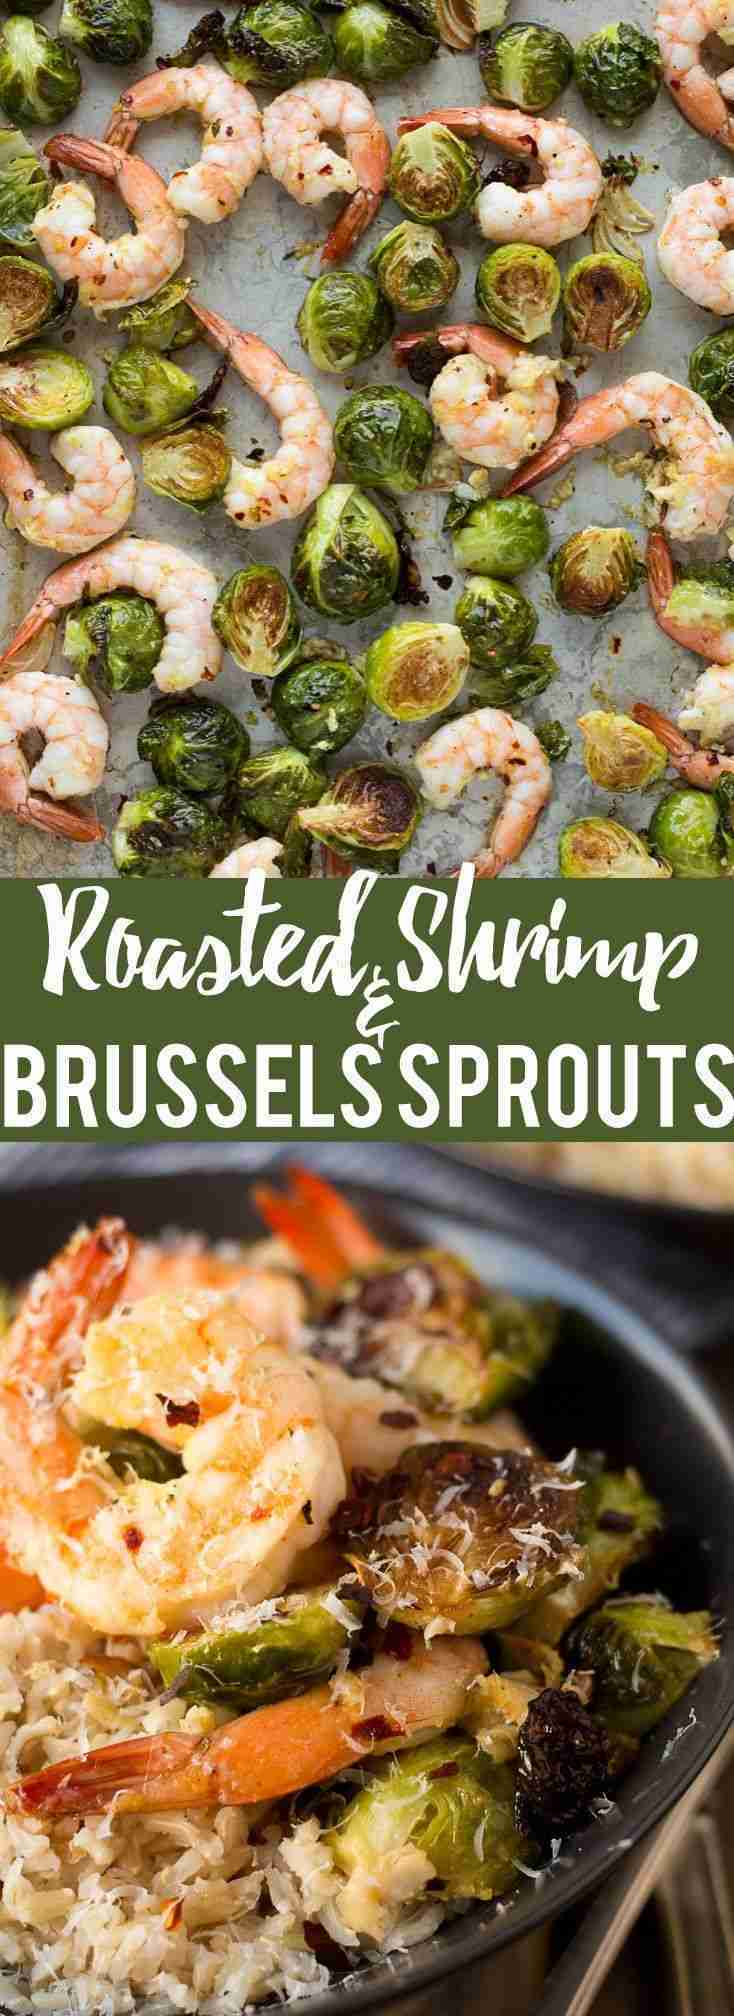 Roasted Shrimp and Brussels Sprouts – Fox and Briar